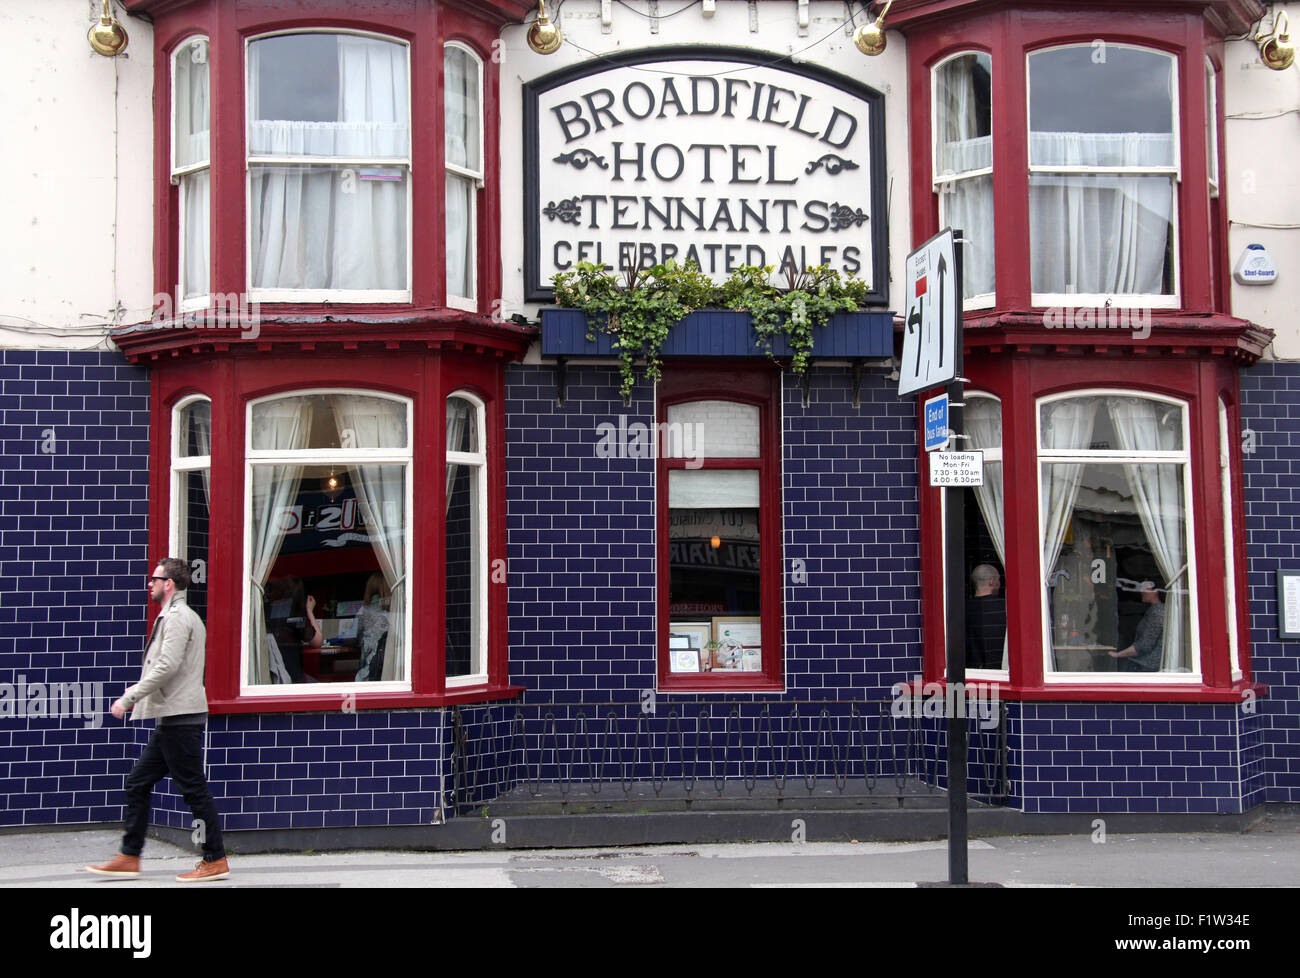 Broadfield Hotel on Abbeydale Road in Sheffield - Stock Image